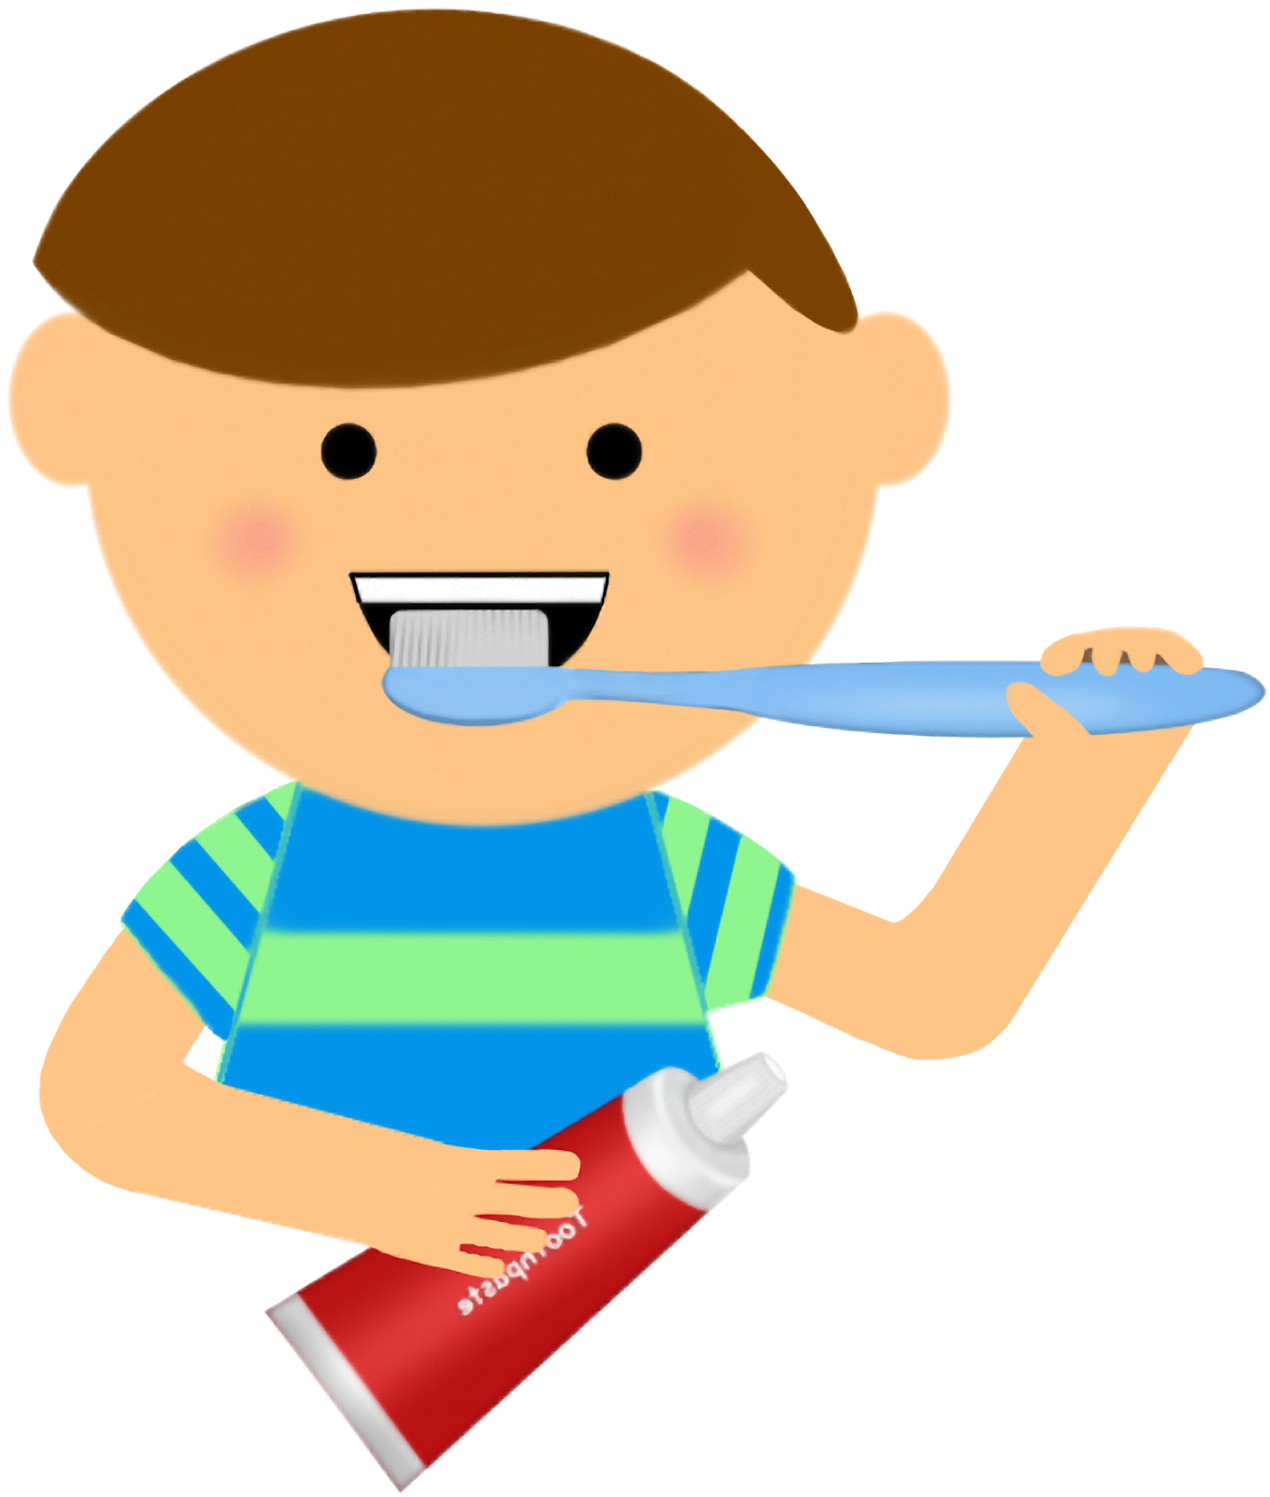 Brush Teeth Clipart Dental Health.